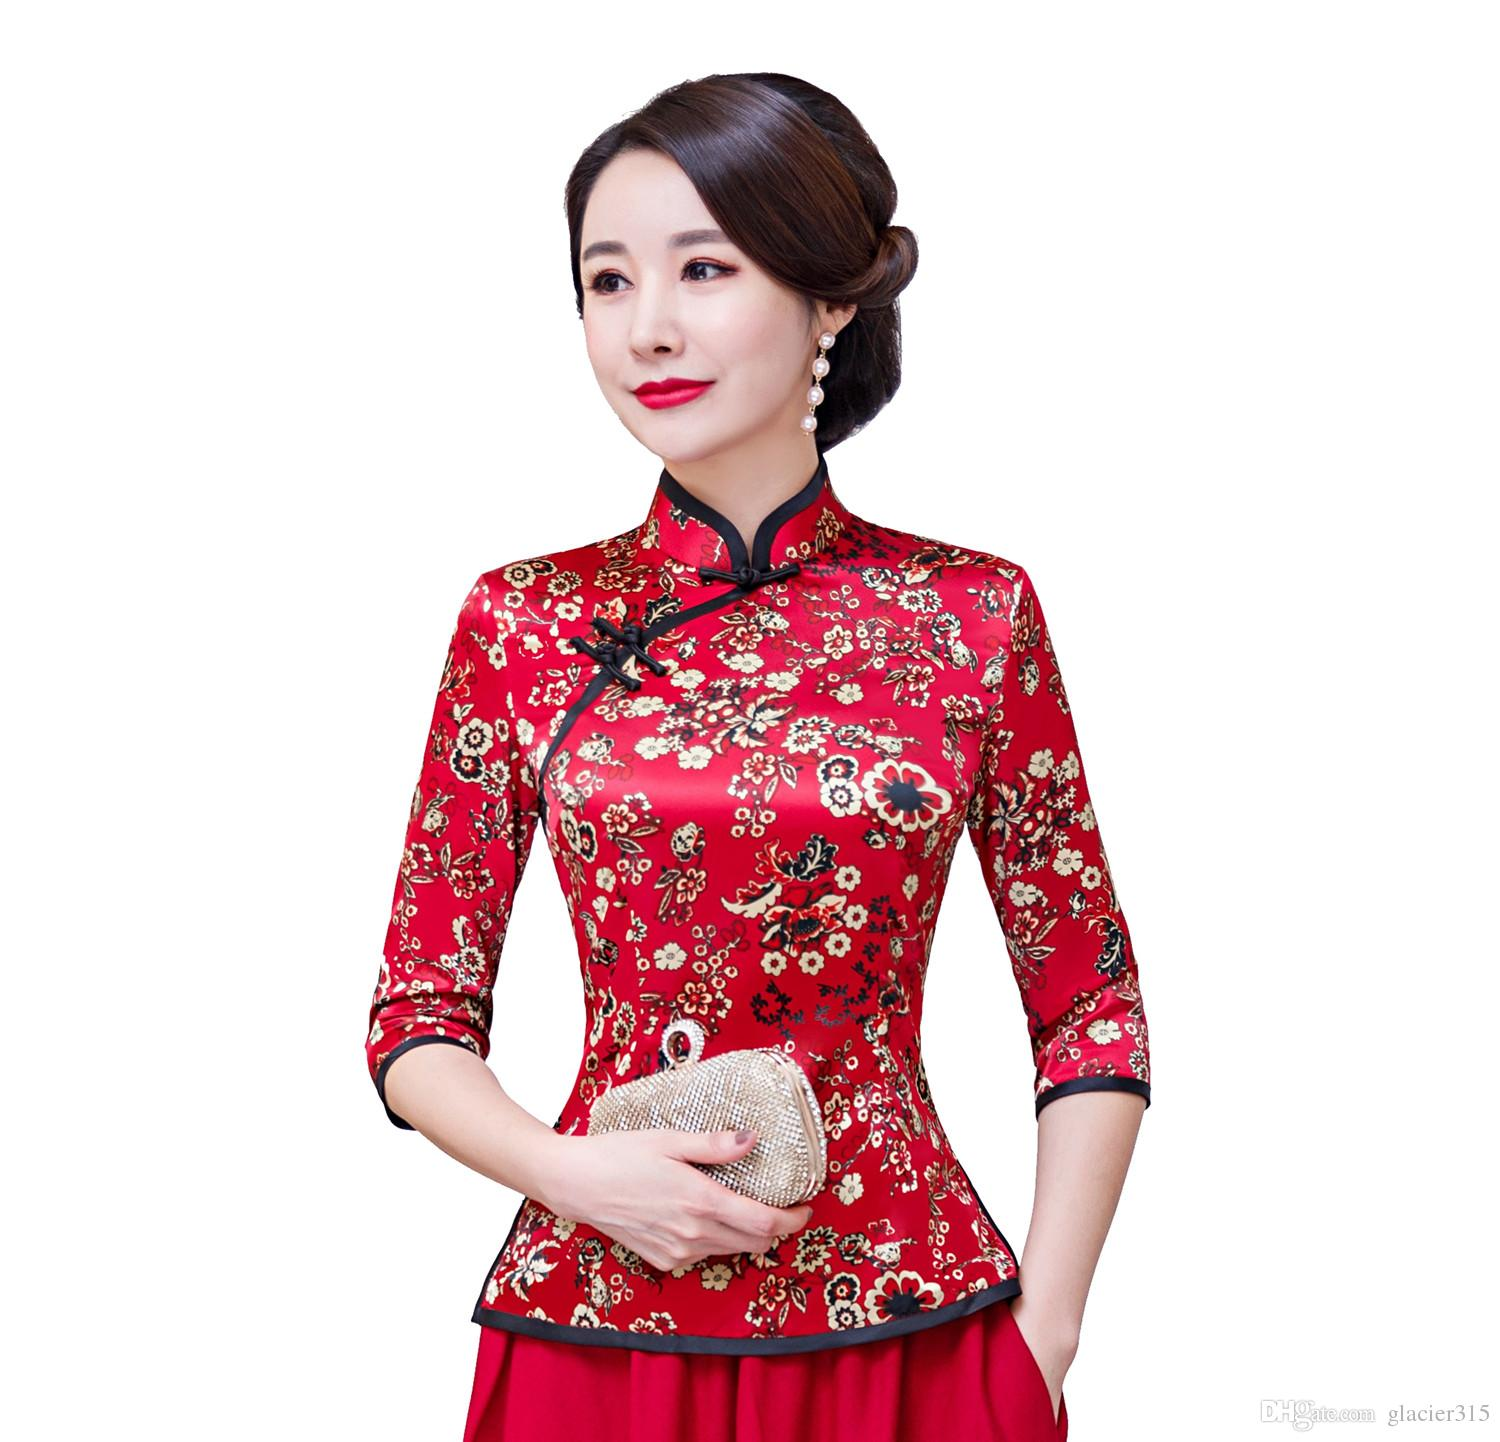 be0a03695b7dc8 Chemise chinoise Cheongsam Shanghai Story Qipao haut à manches 3/4  traditionnelle chinoise Top Fausse soie blouse chinoise pour les femmes